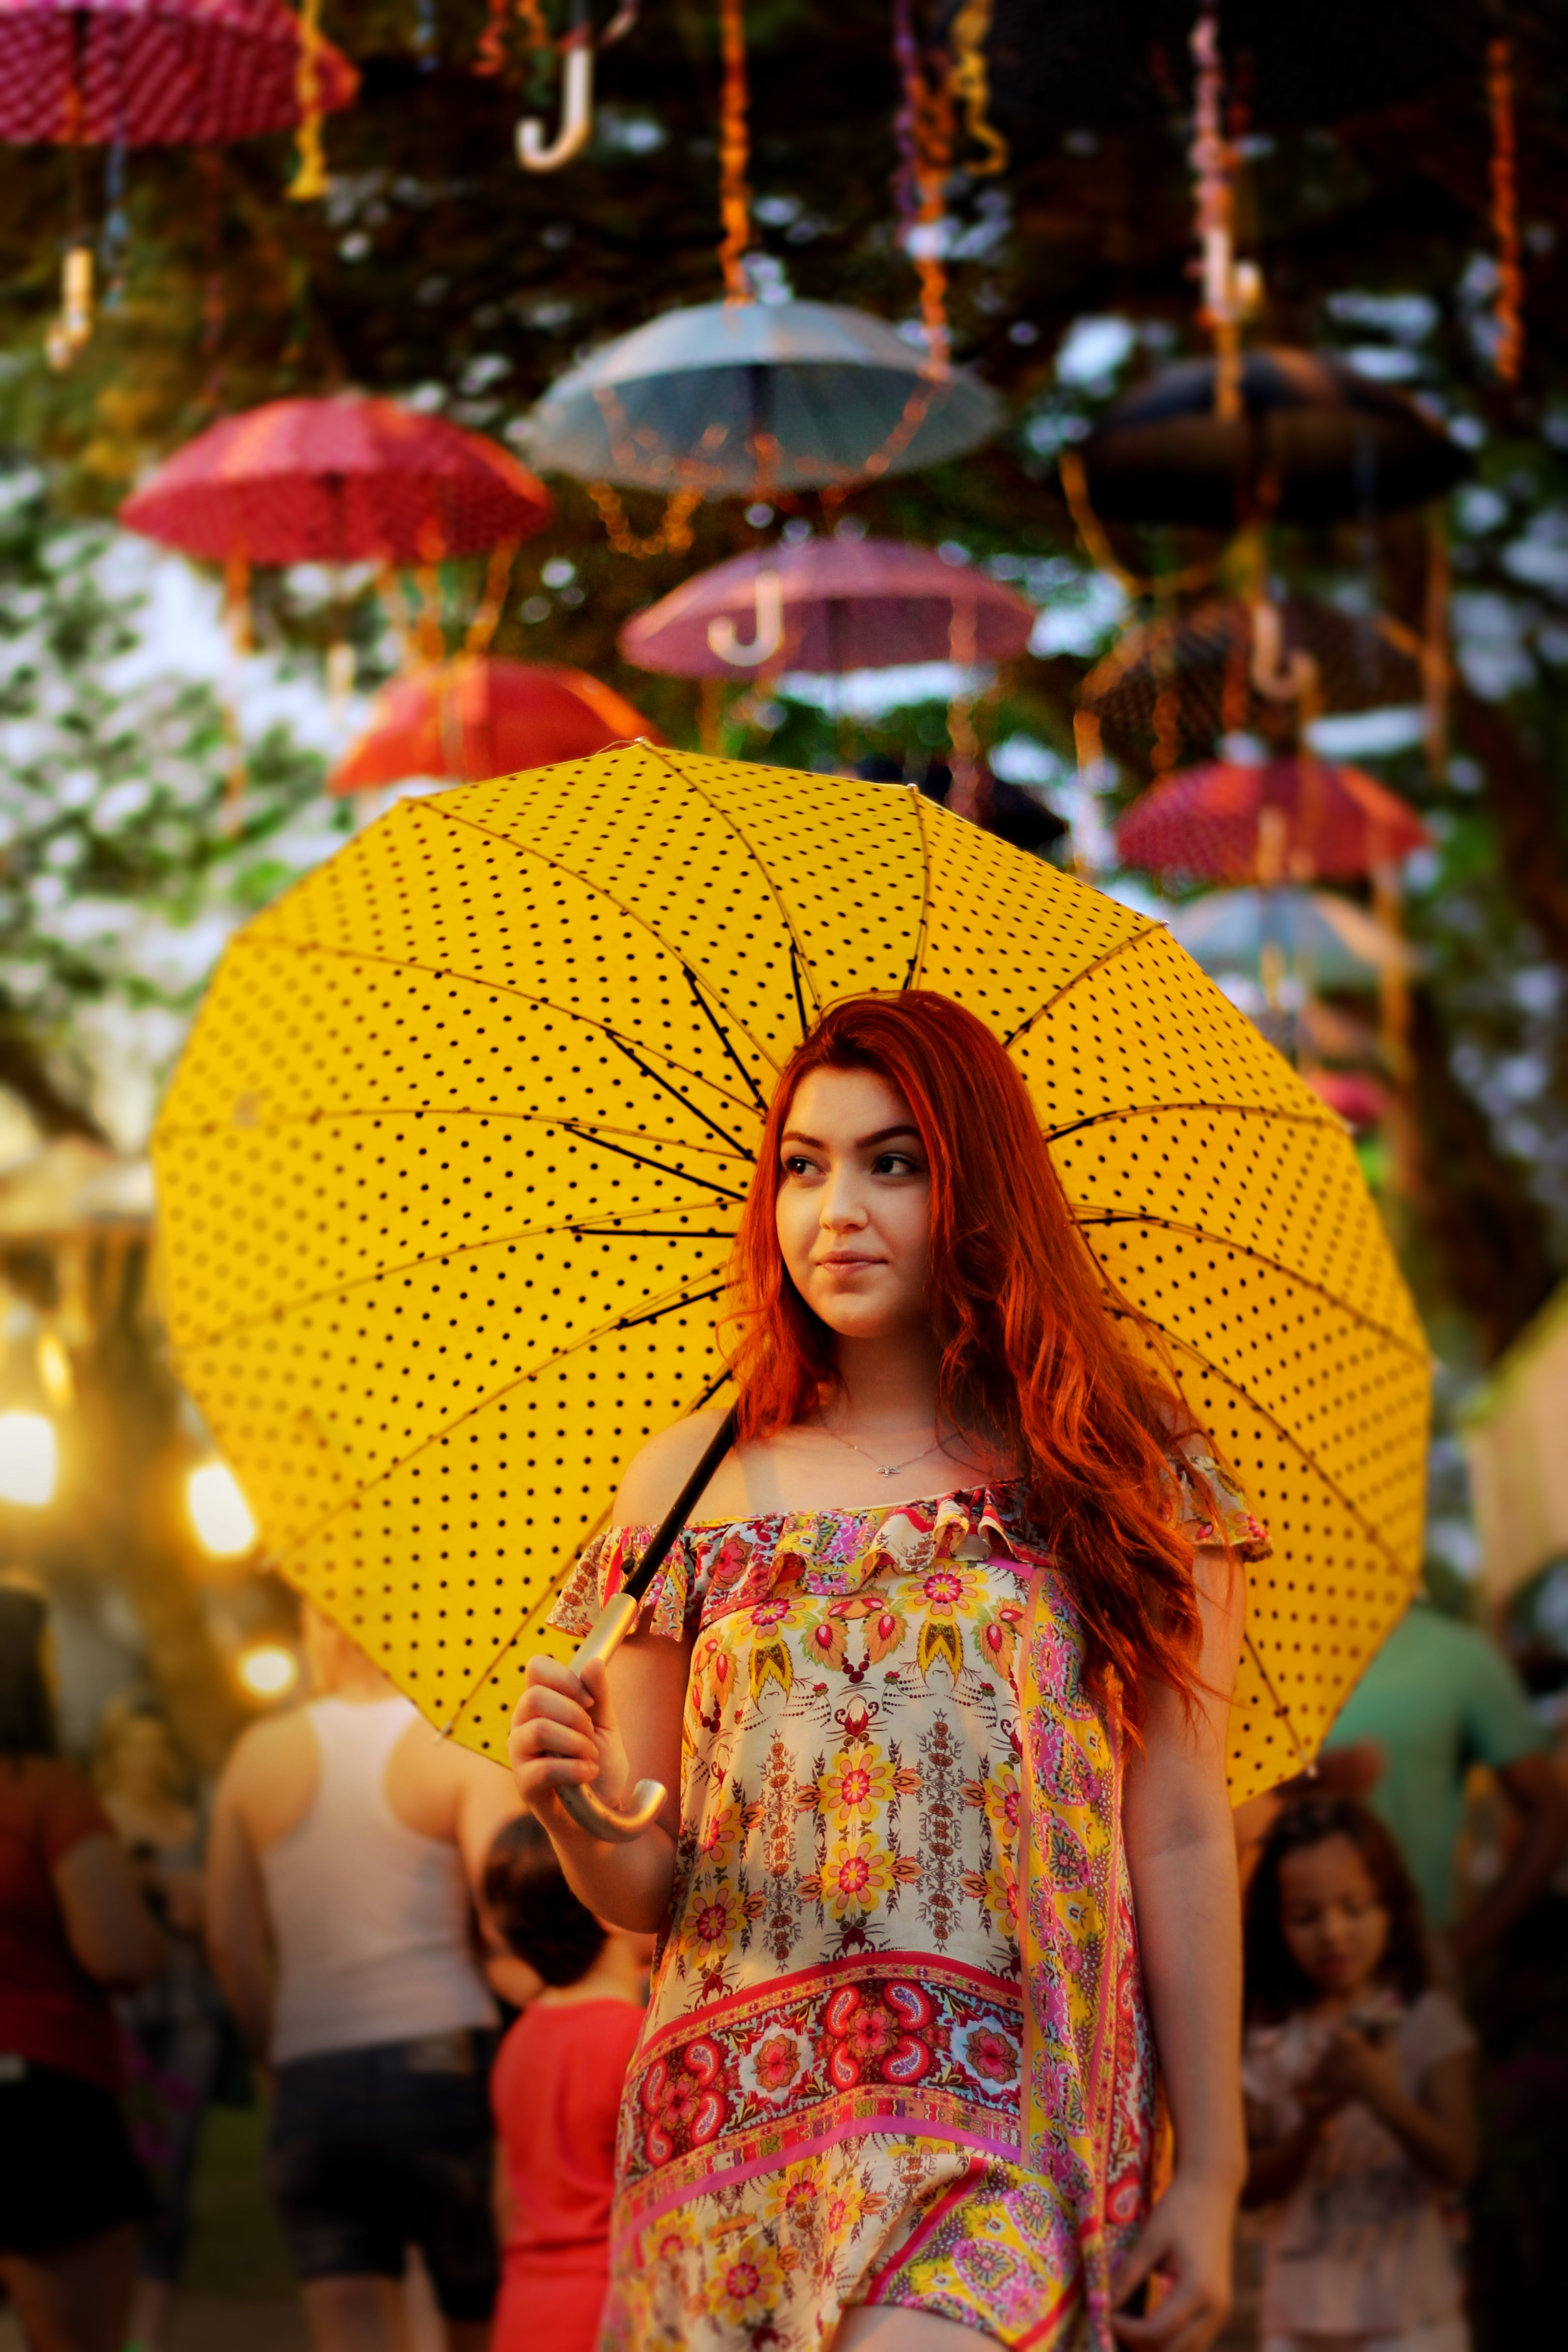 An Asian redhead female holding a yellow umbrella.